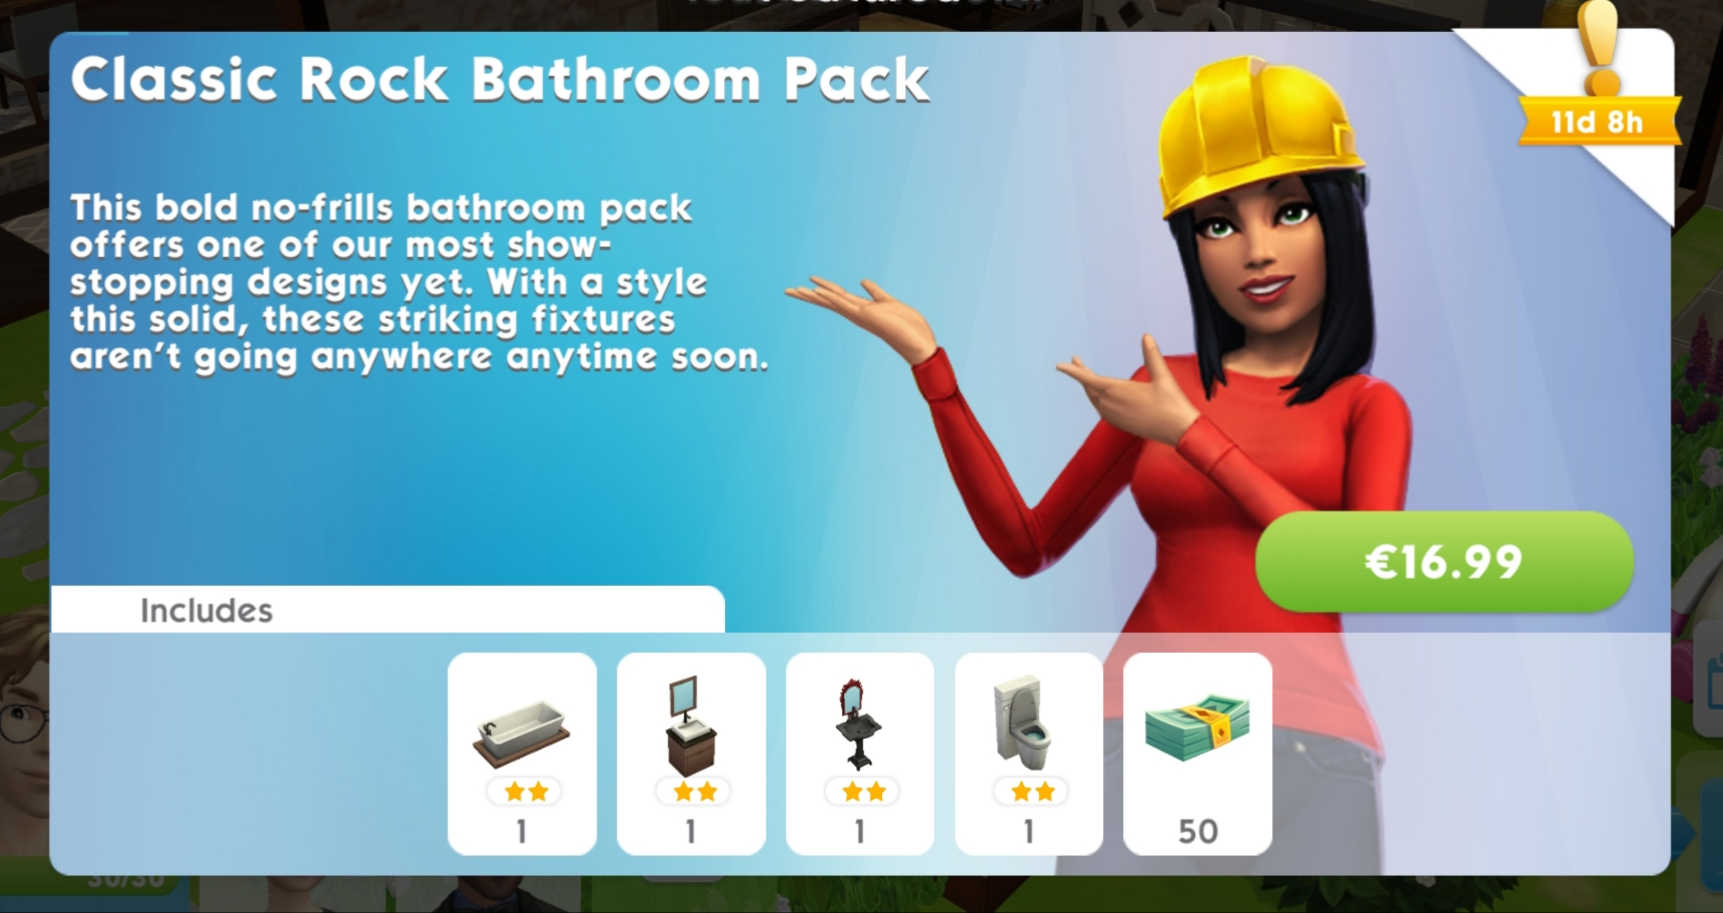 Classic Rock Bathroom Pack